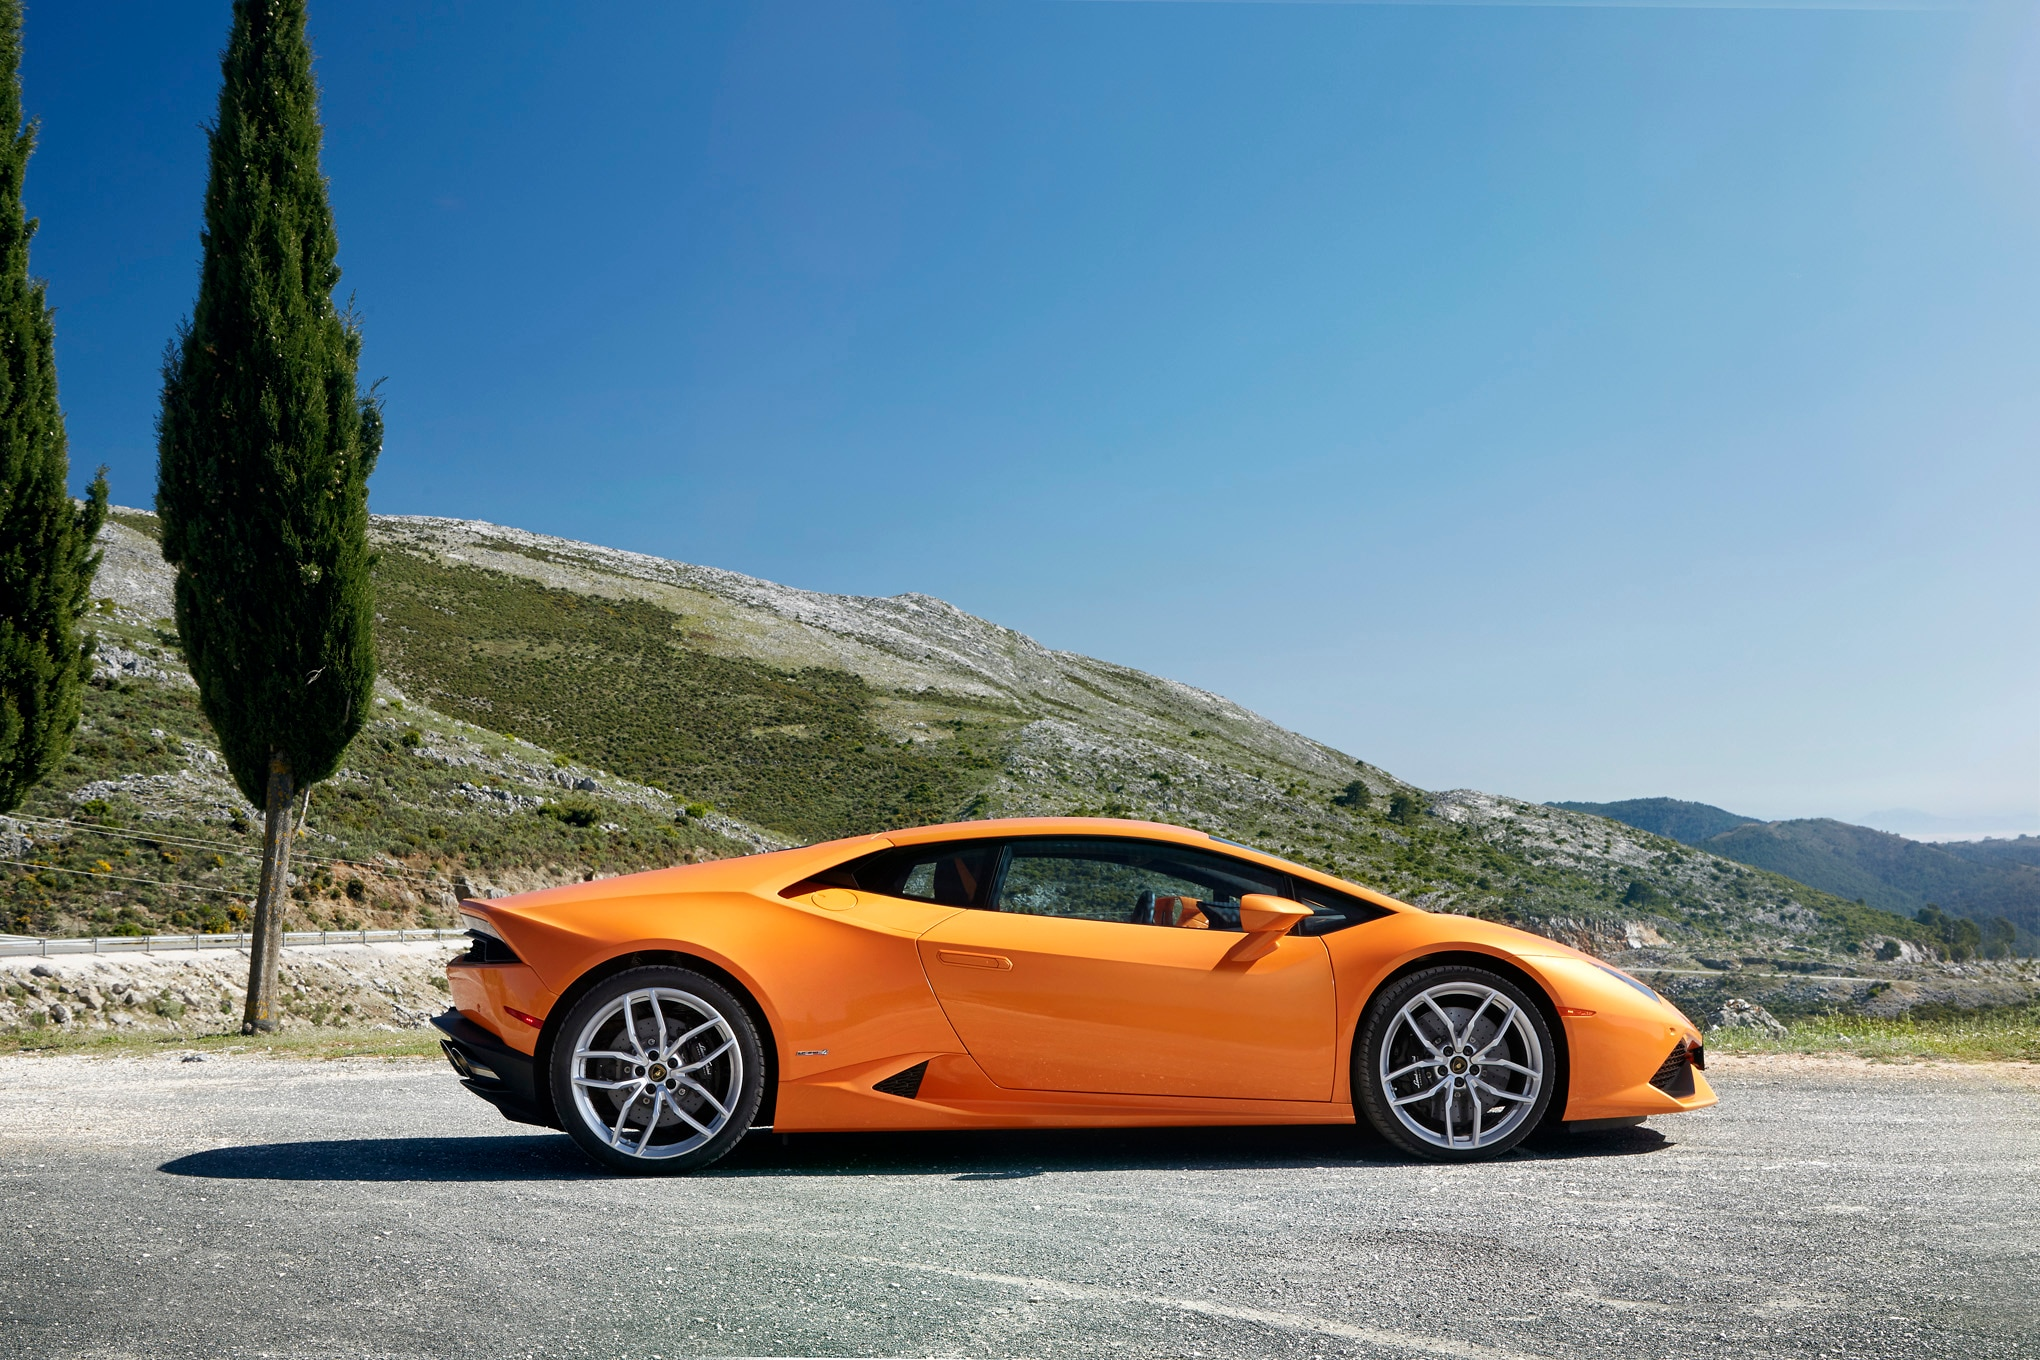 2015-Lamborghini-Huracan-LP-610-4-side-profile Stunning Lamborghini Huracan Price Real Racing 3 Cars Trend